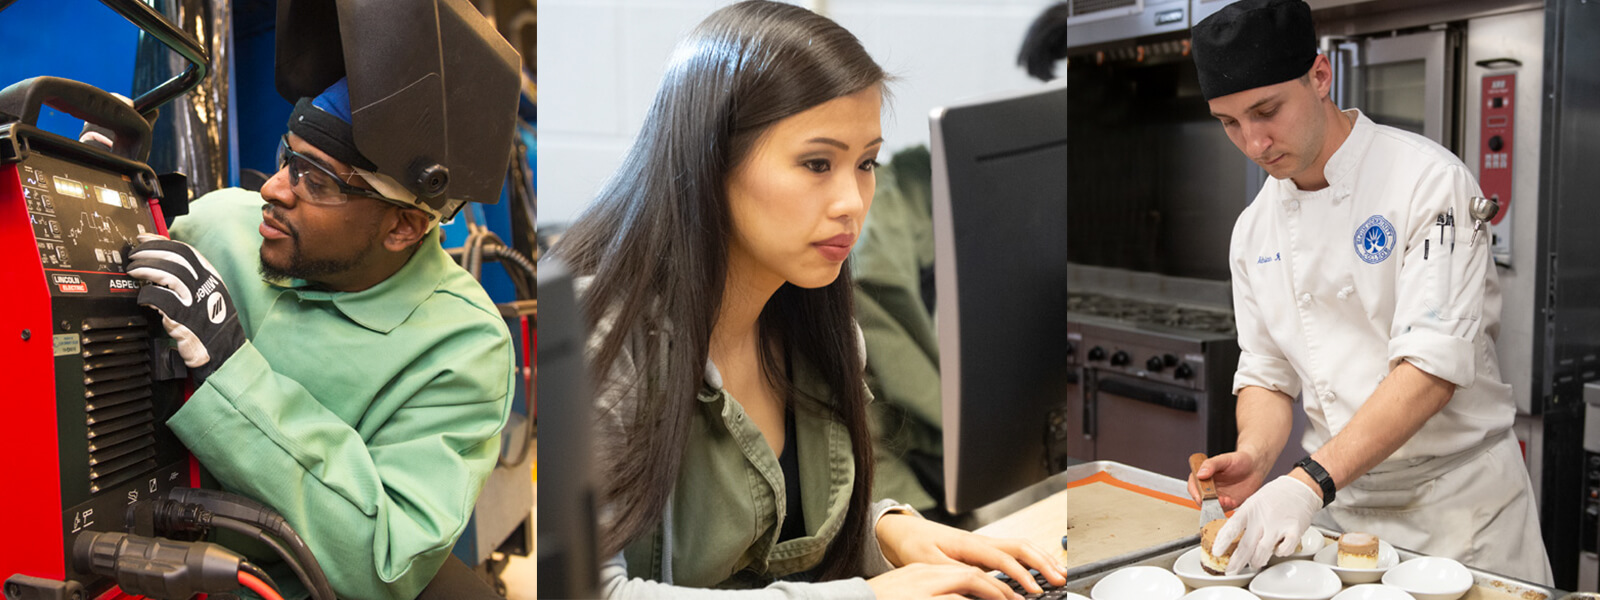 Images of students working.